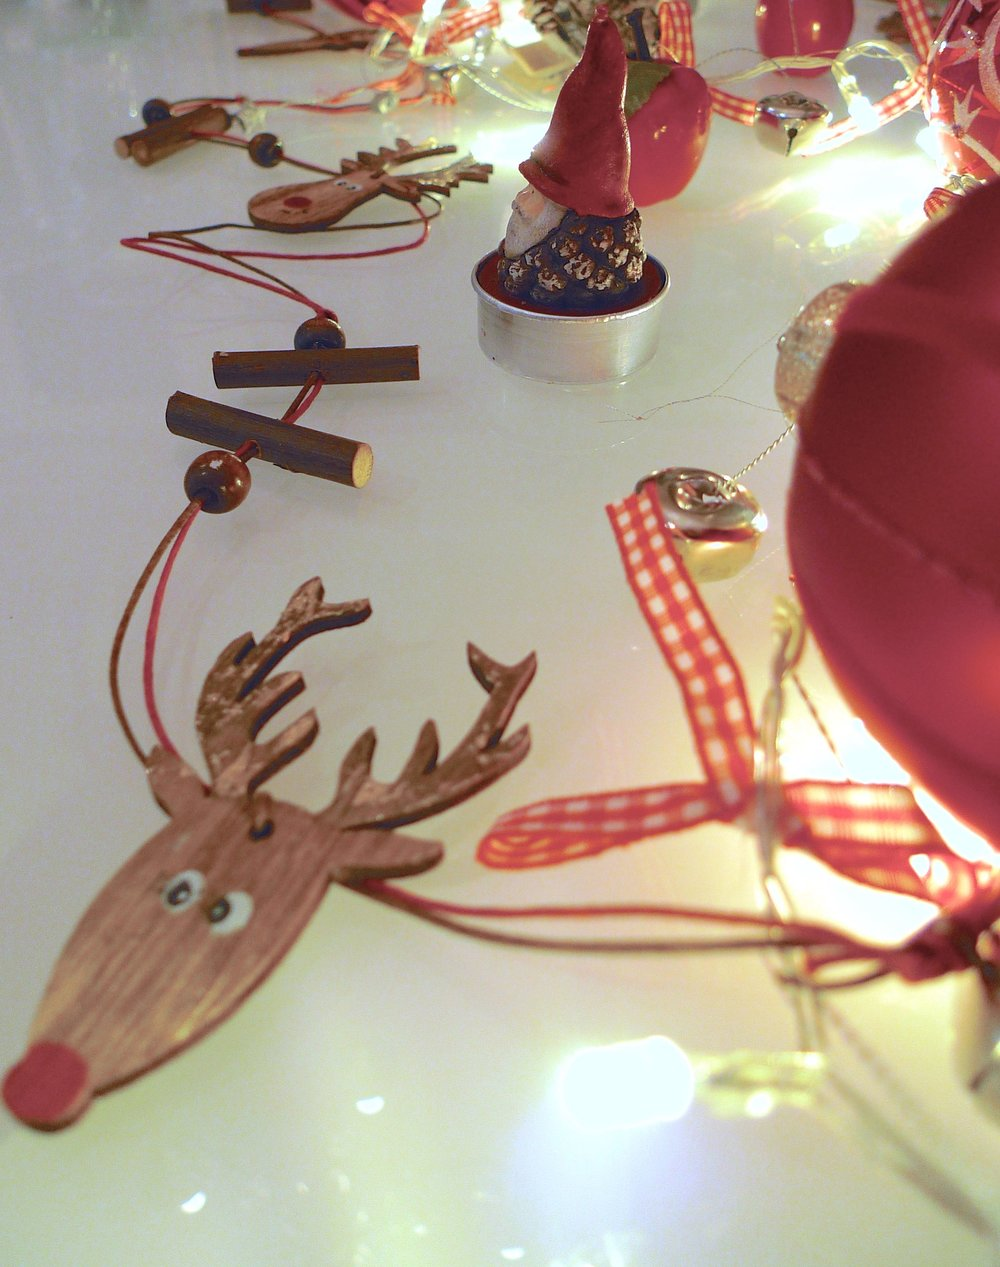 A cheeky reindeer garland among the jingle bell lights from TK Maxx